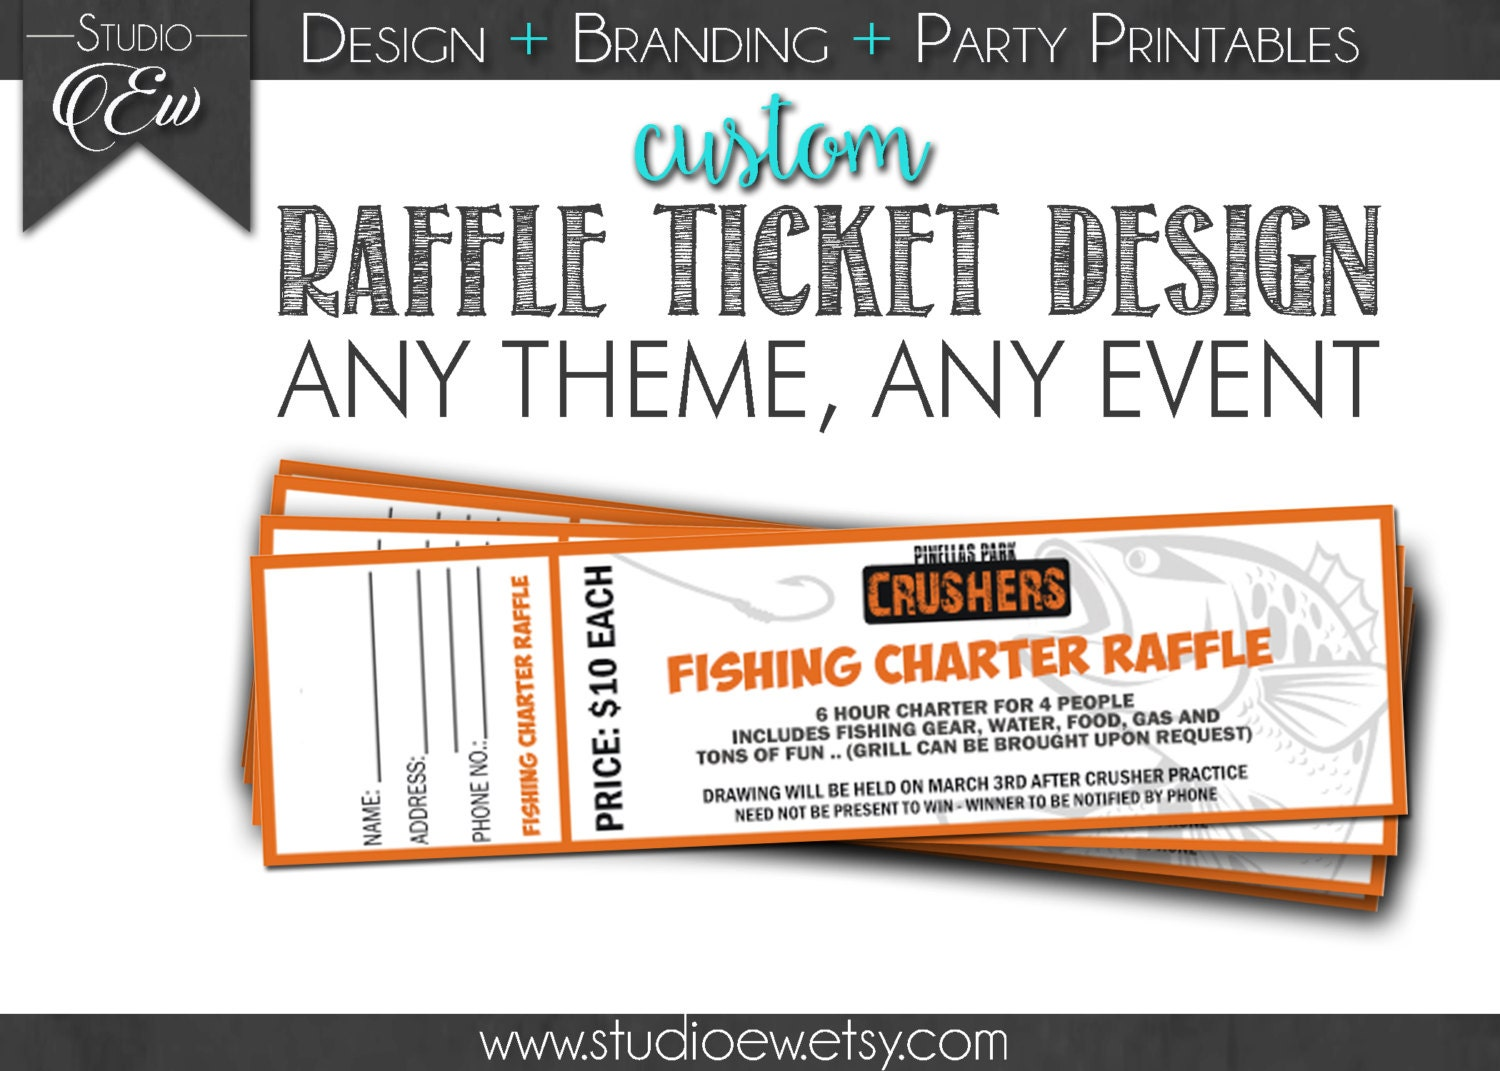 custom raffle ticket design any event any theme fundraiser fundraiser ticket design raffle 🔎zoom